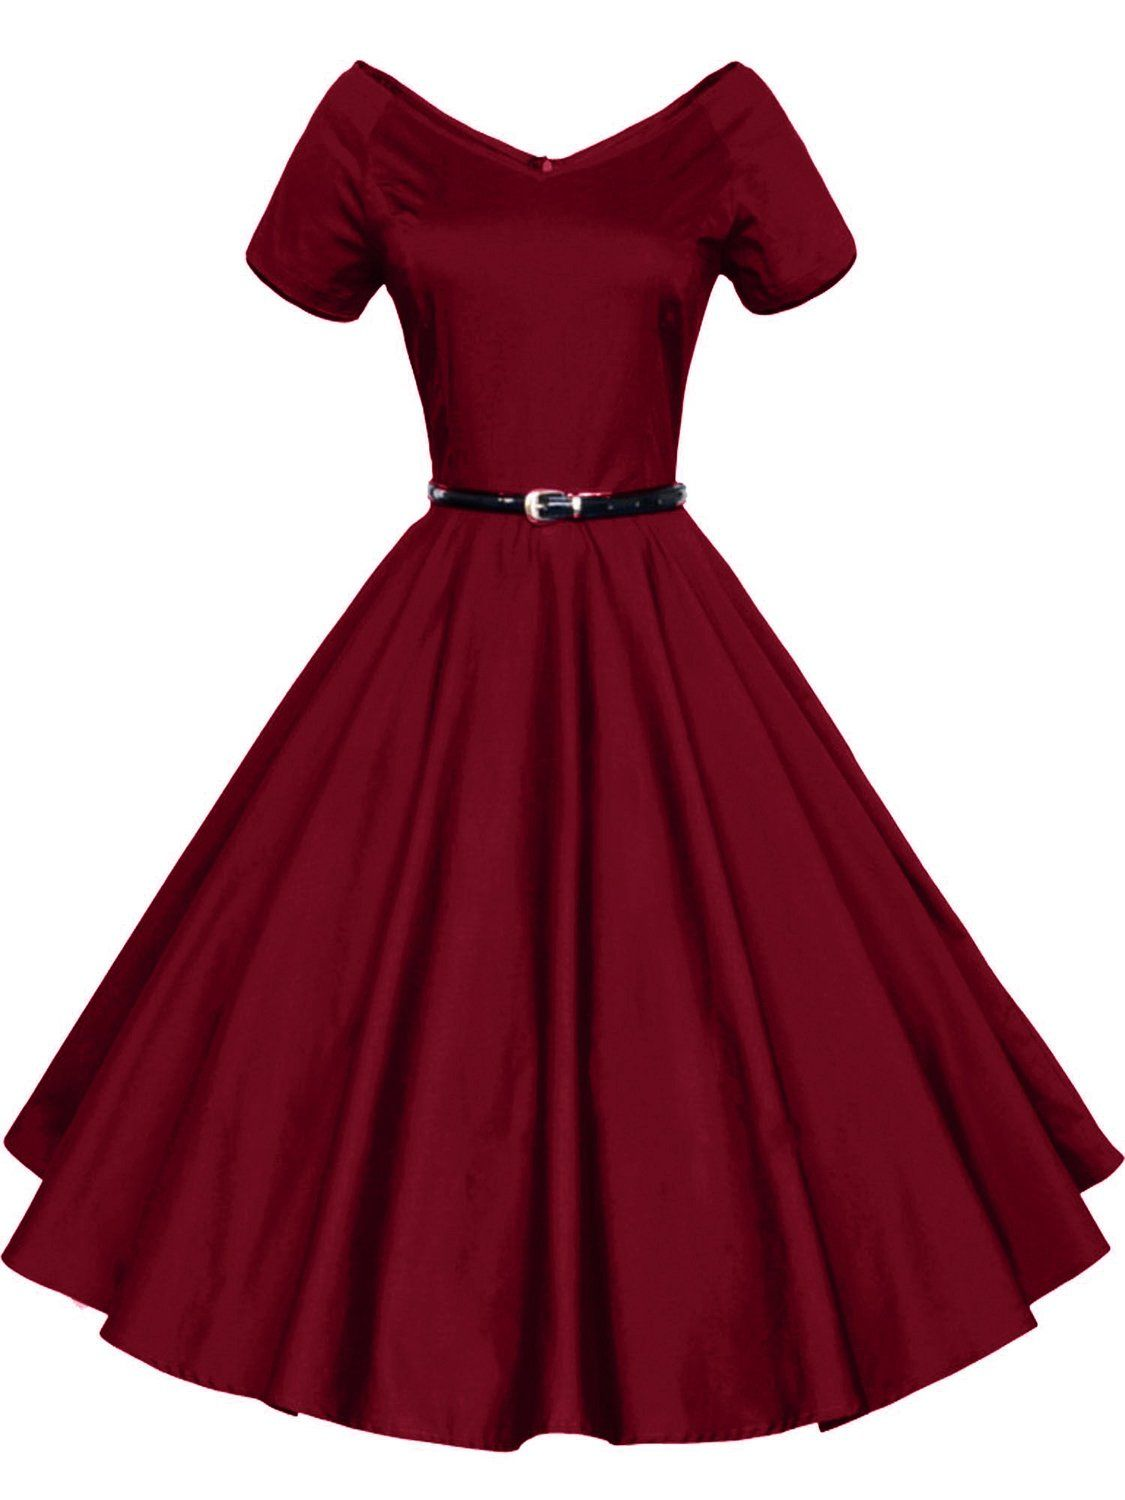 8e392c805af Amazon.com  iLover Women 1950s V-Neck Vintage Rockabilly Swing Evening Party  Dress  Clothing